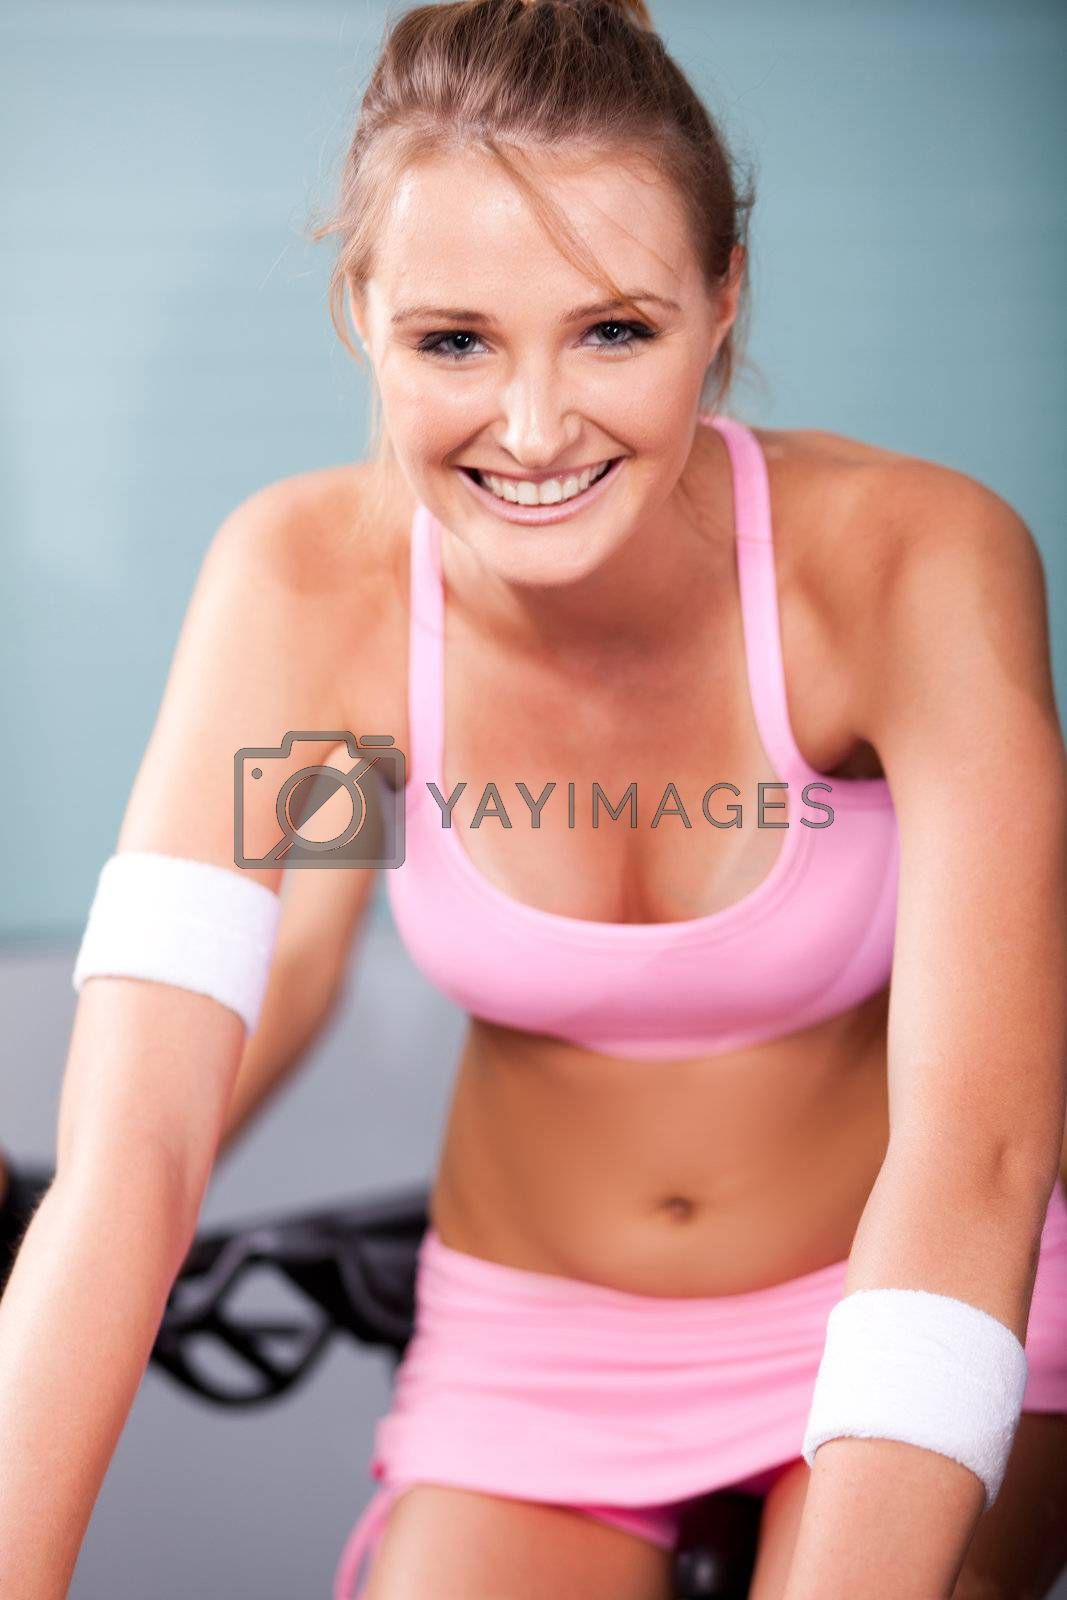 Young woman smiling while doing cardio exercise in a gym.